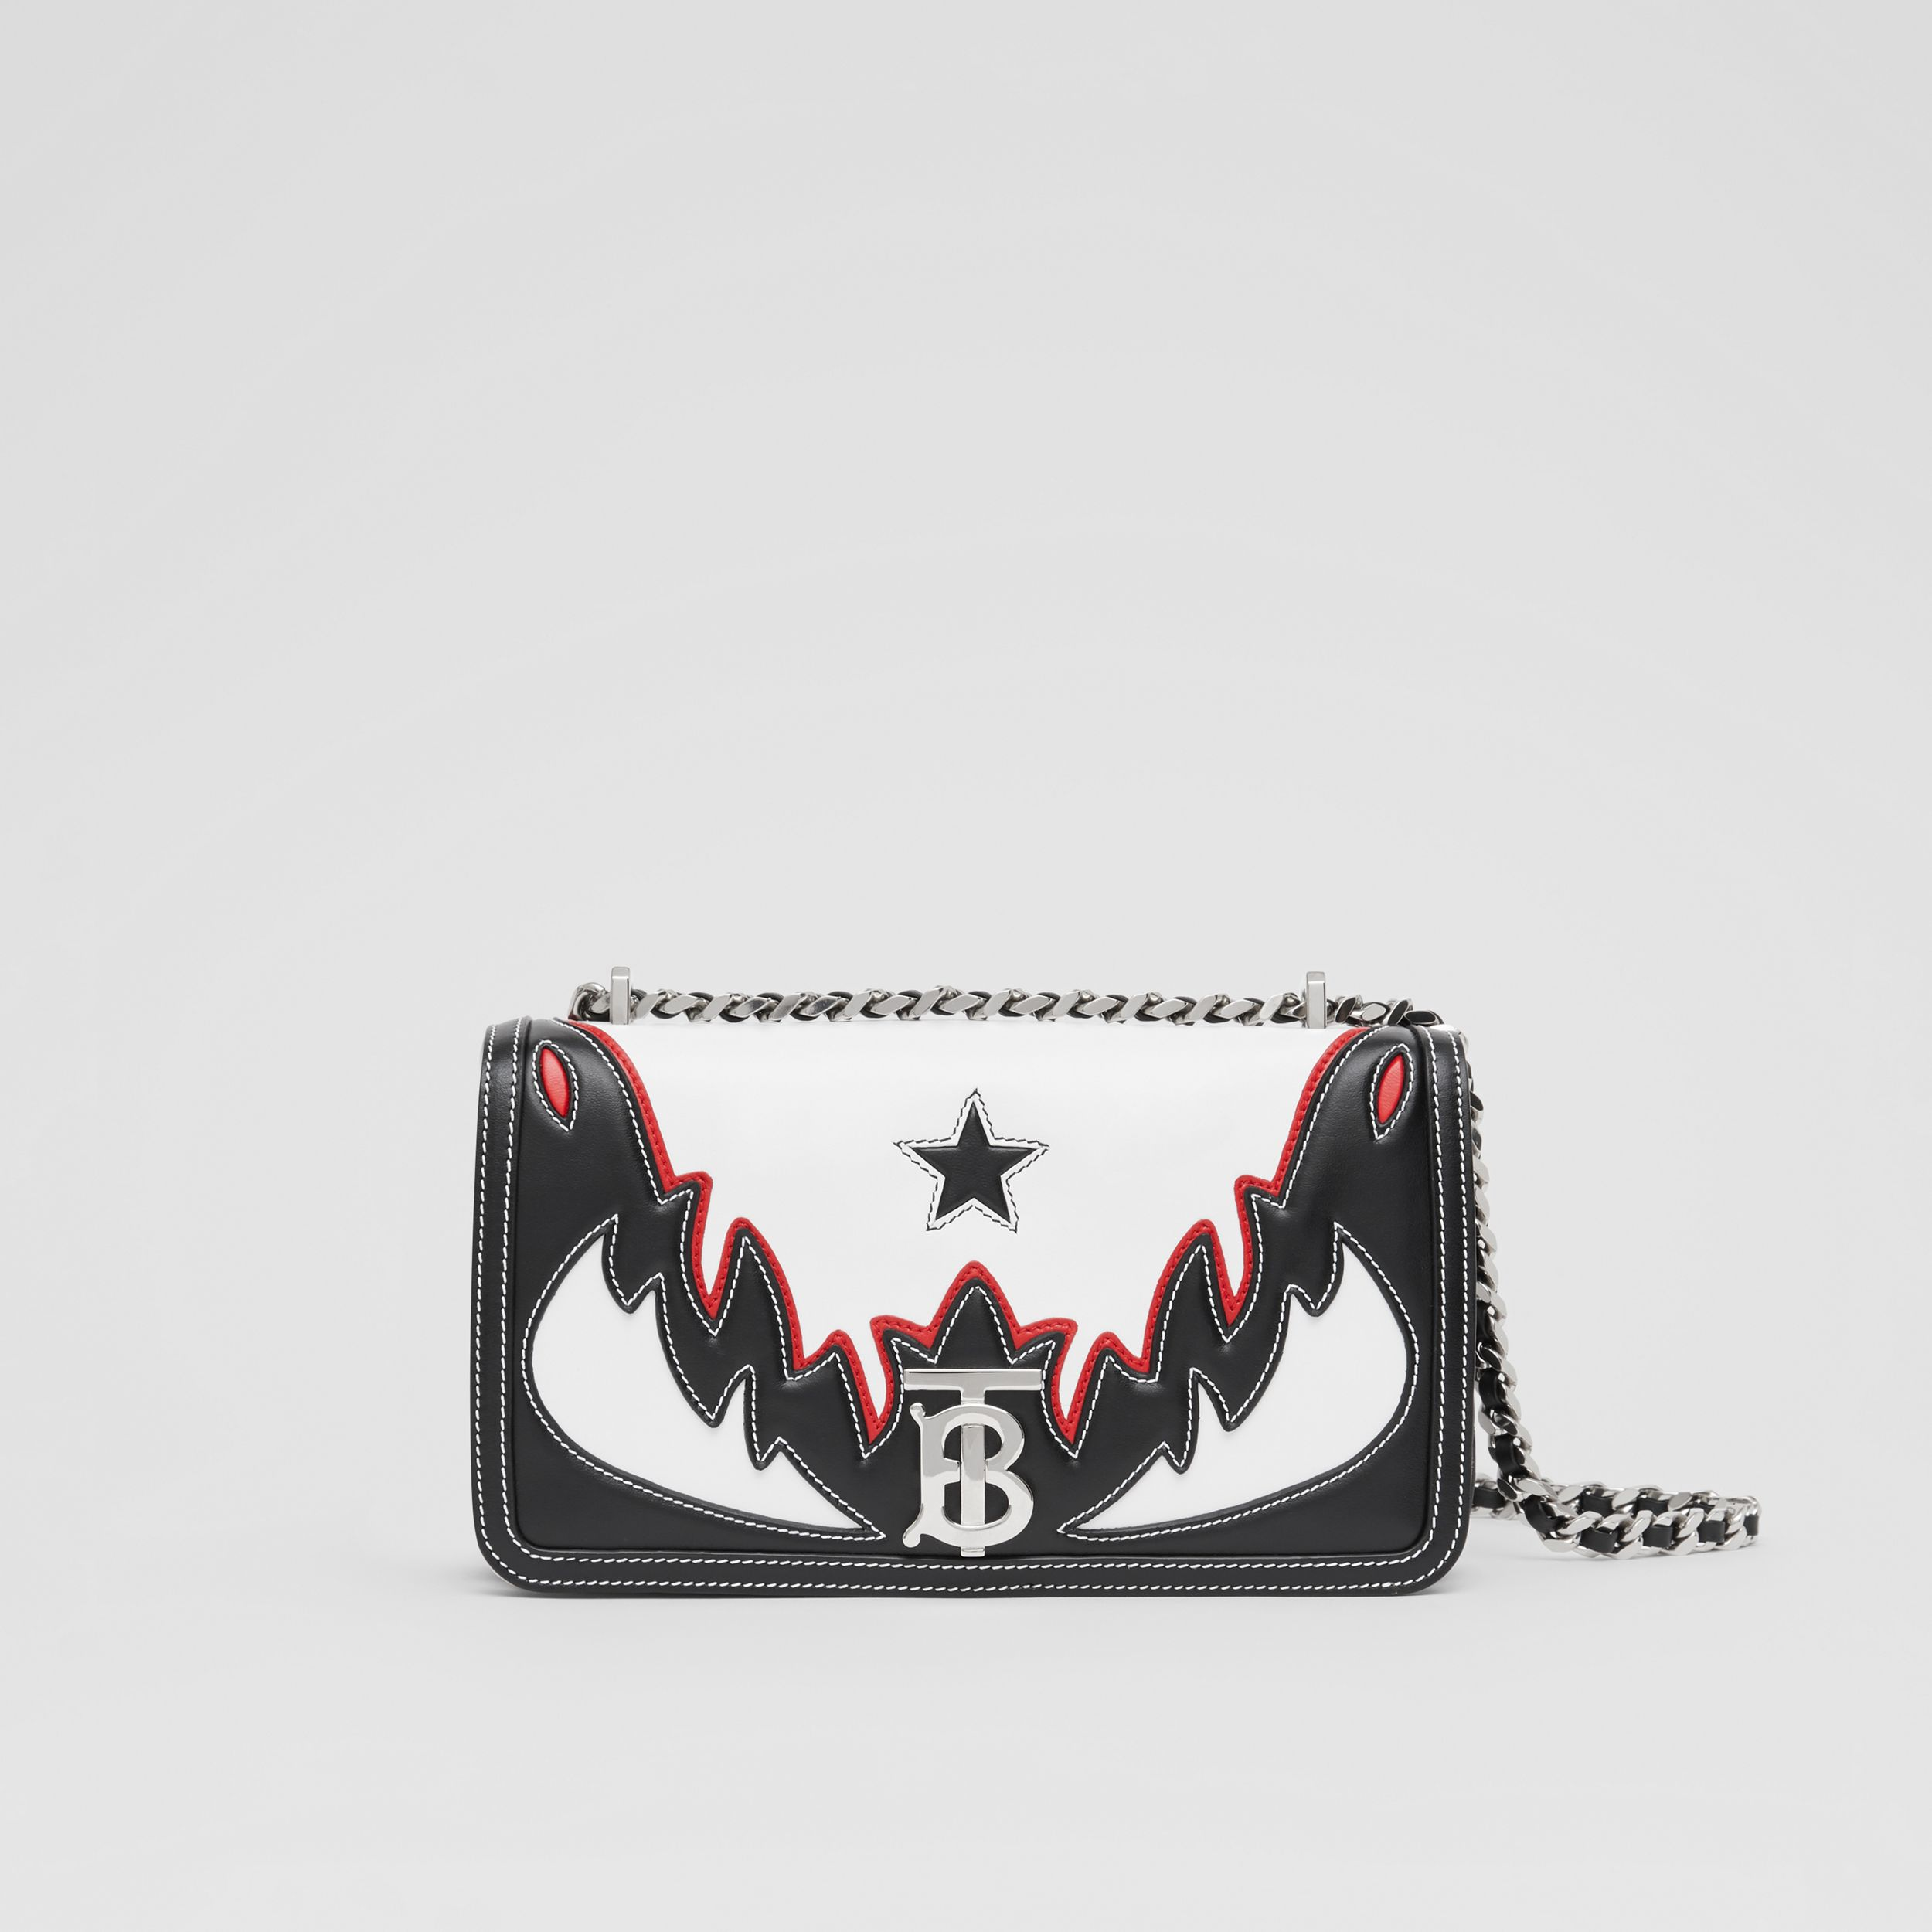 Small Topstitch Appliqué Lola Bag – Online Exclusive in White/black/red - Women | Burberry Canada - 1